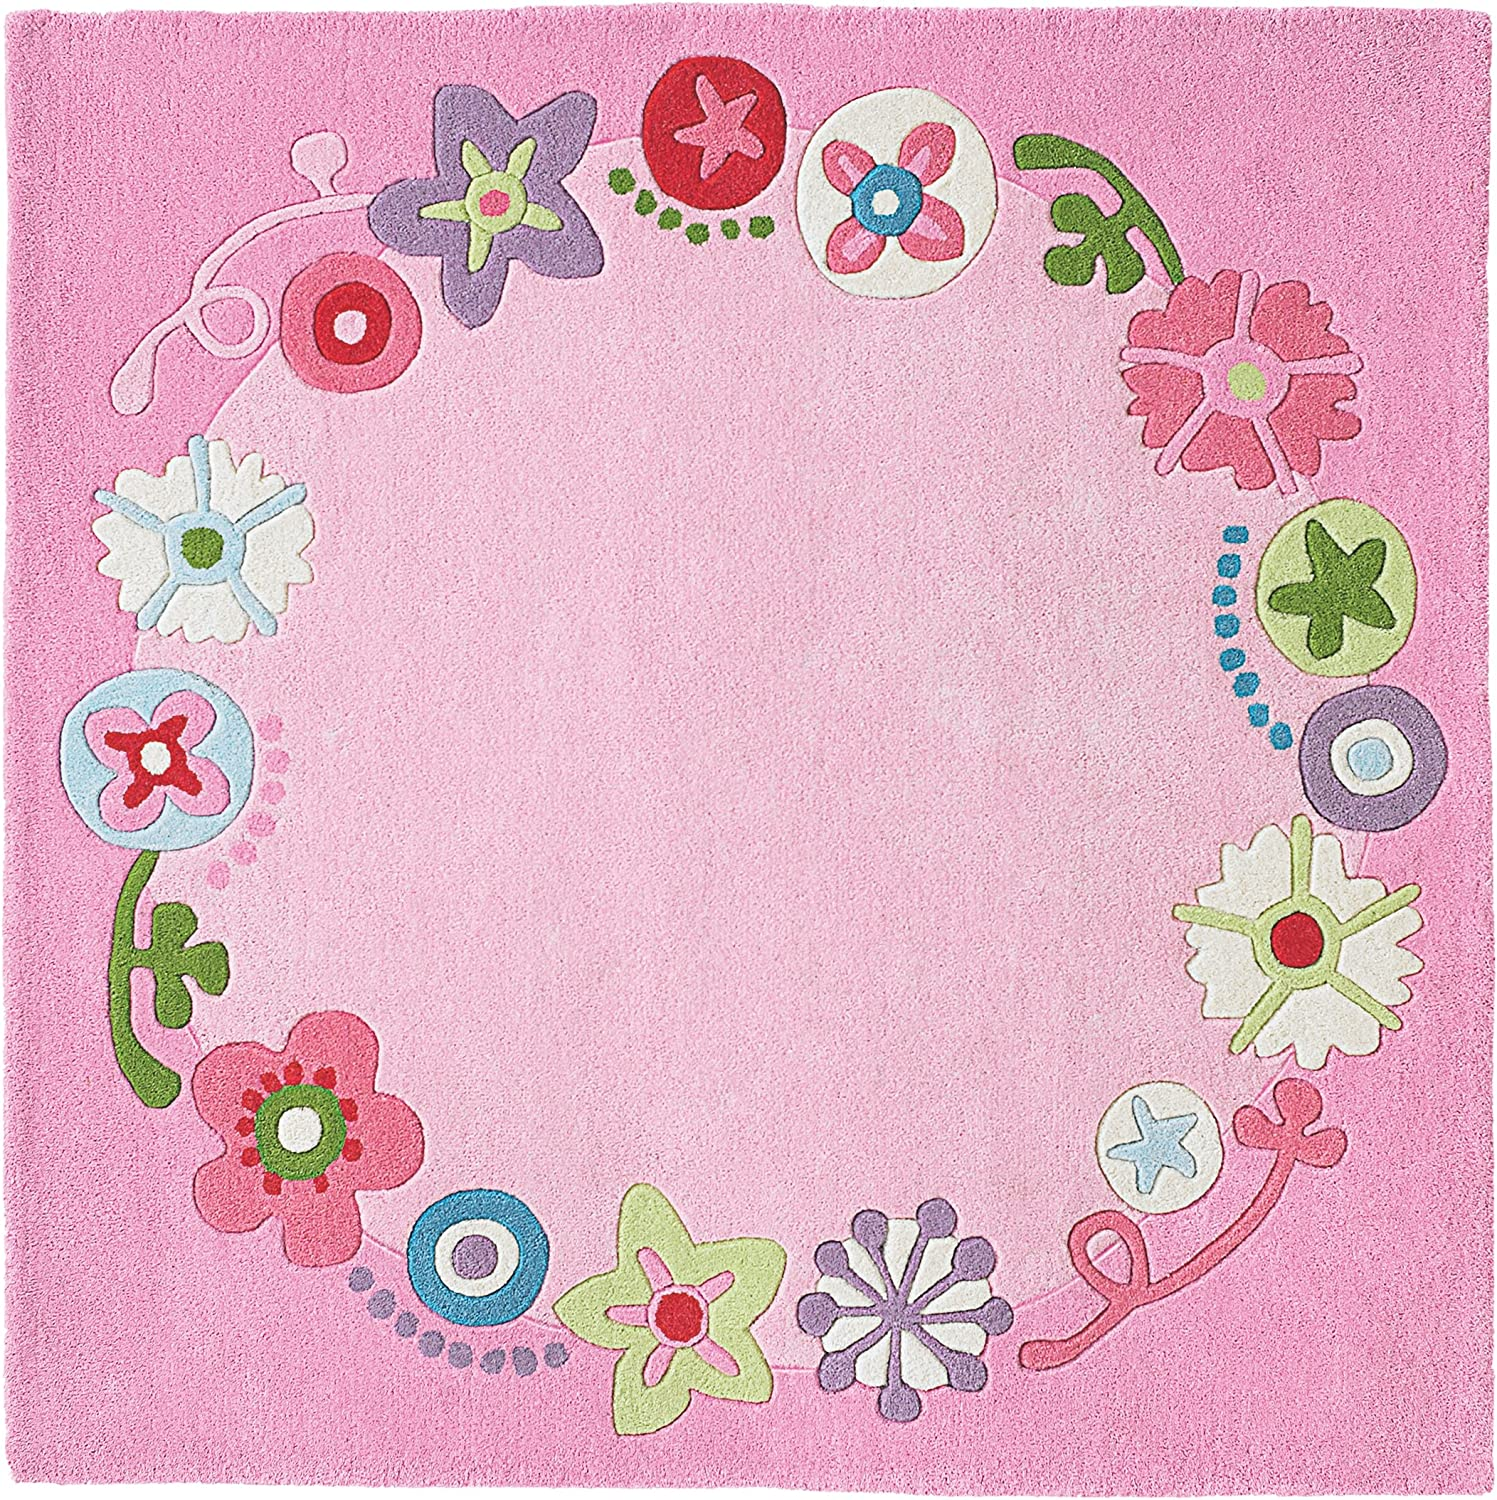 HABA 8062 Rug Floral Wreath Toy, Pink